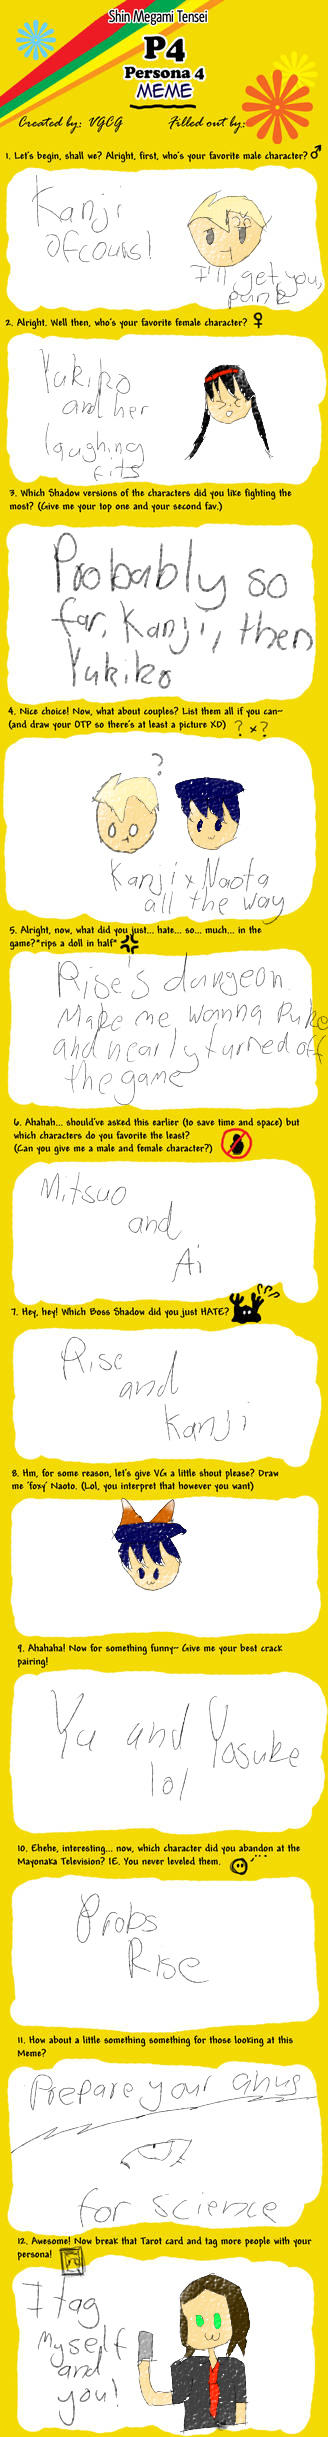 Persona 4 Meme - Made by VGCG